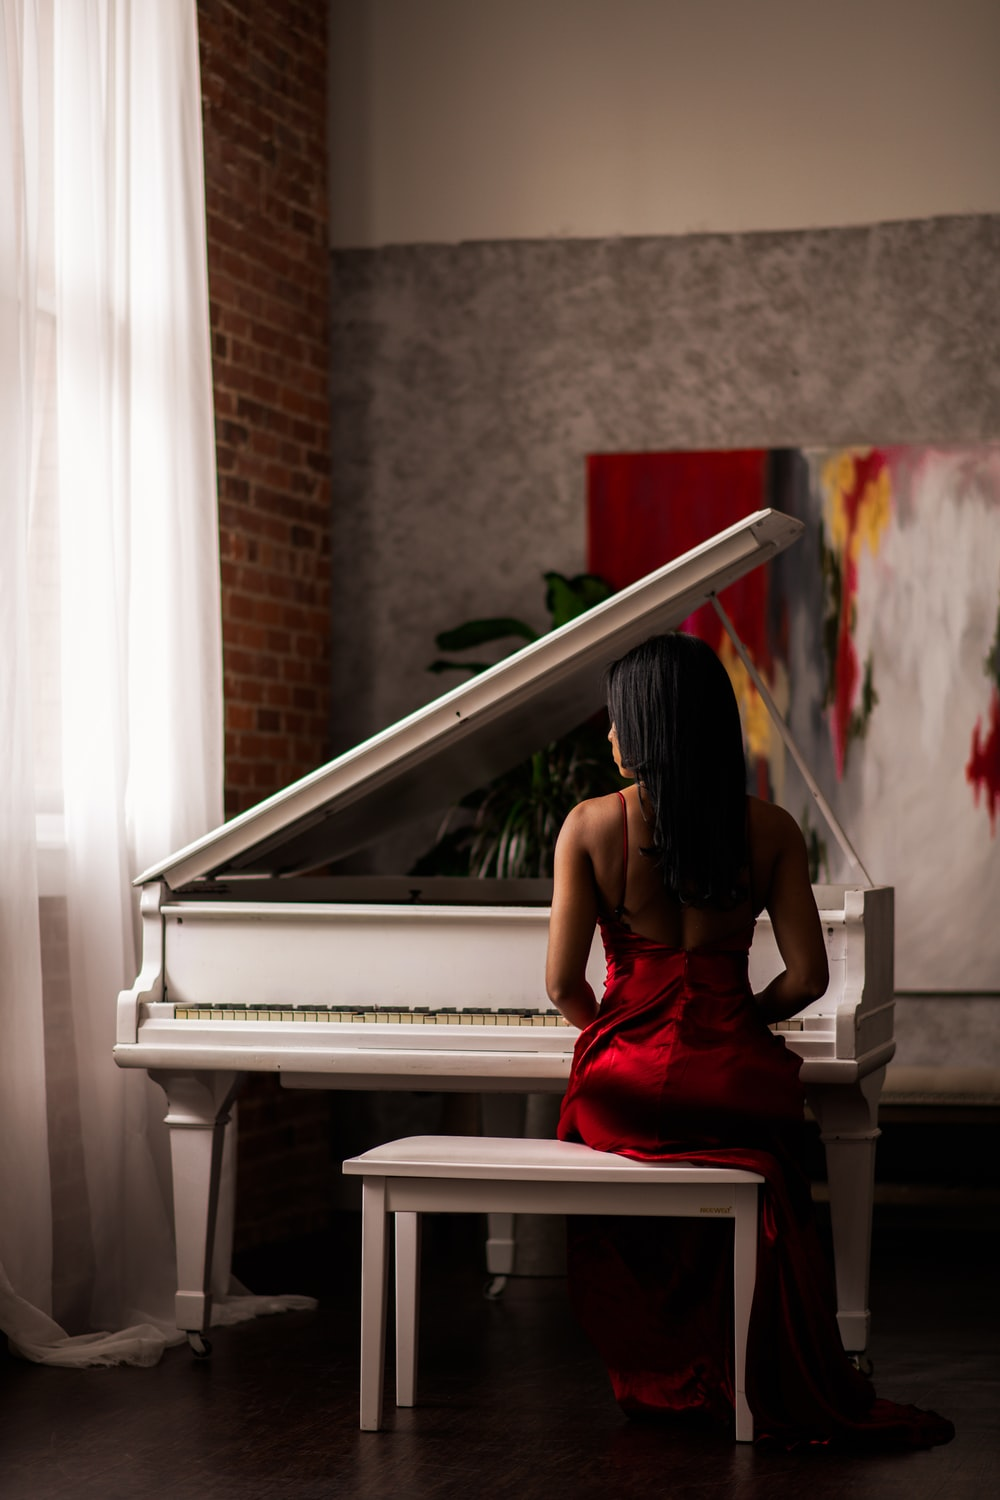 woman in red dress sitting on piano